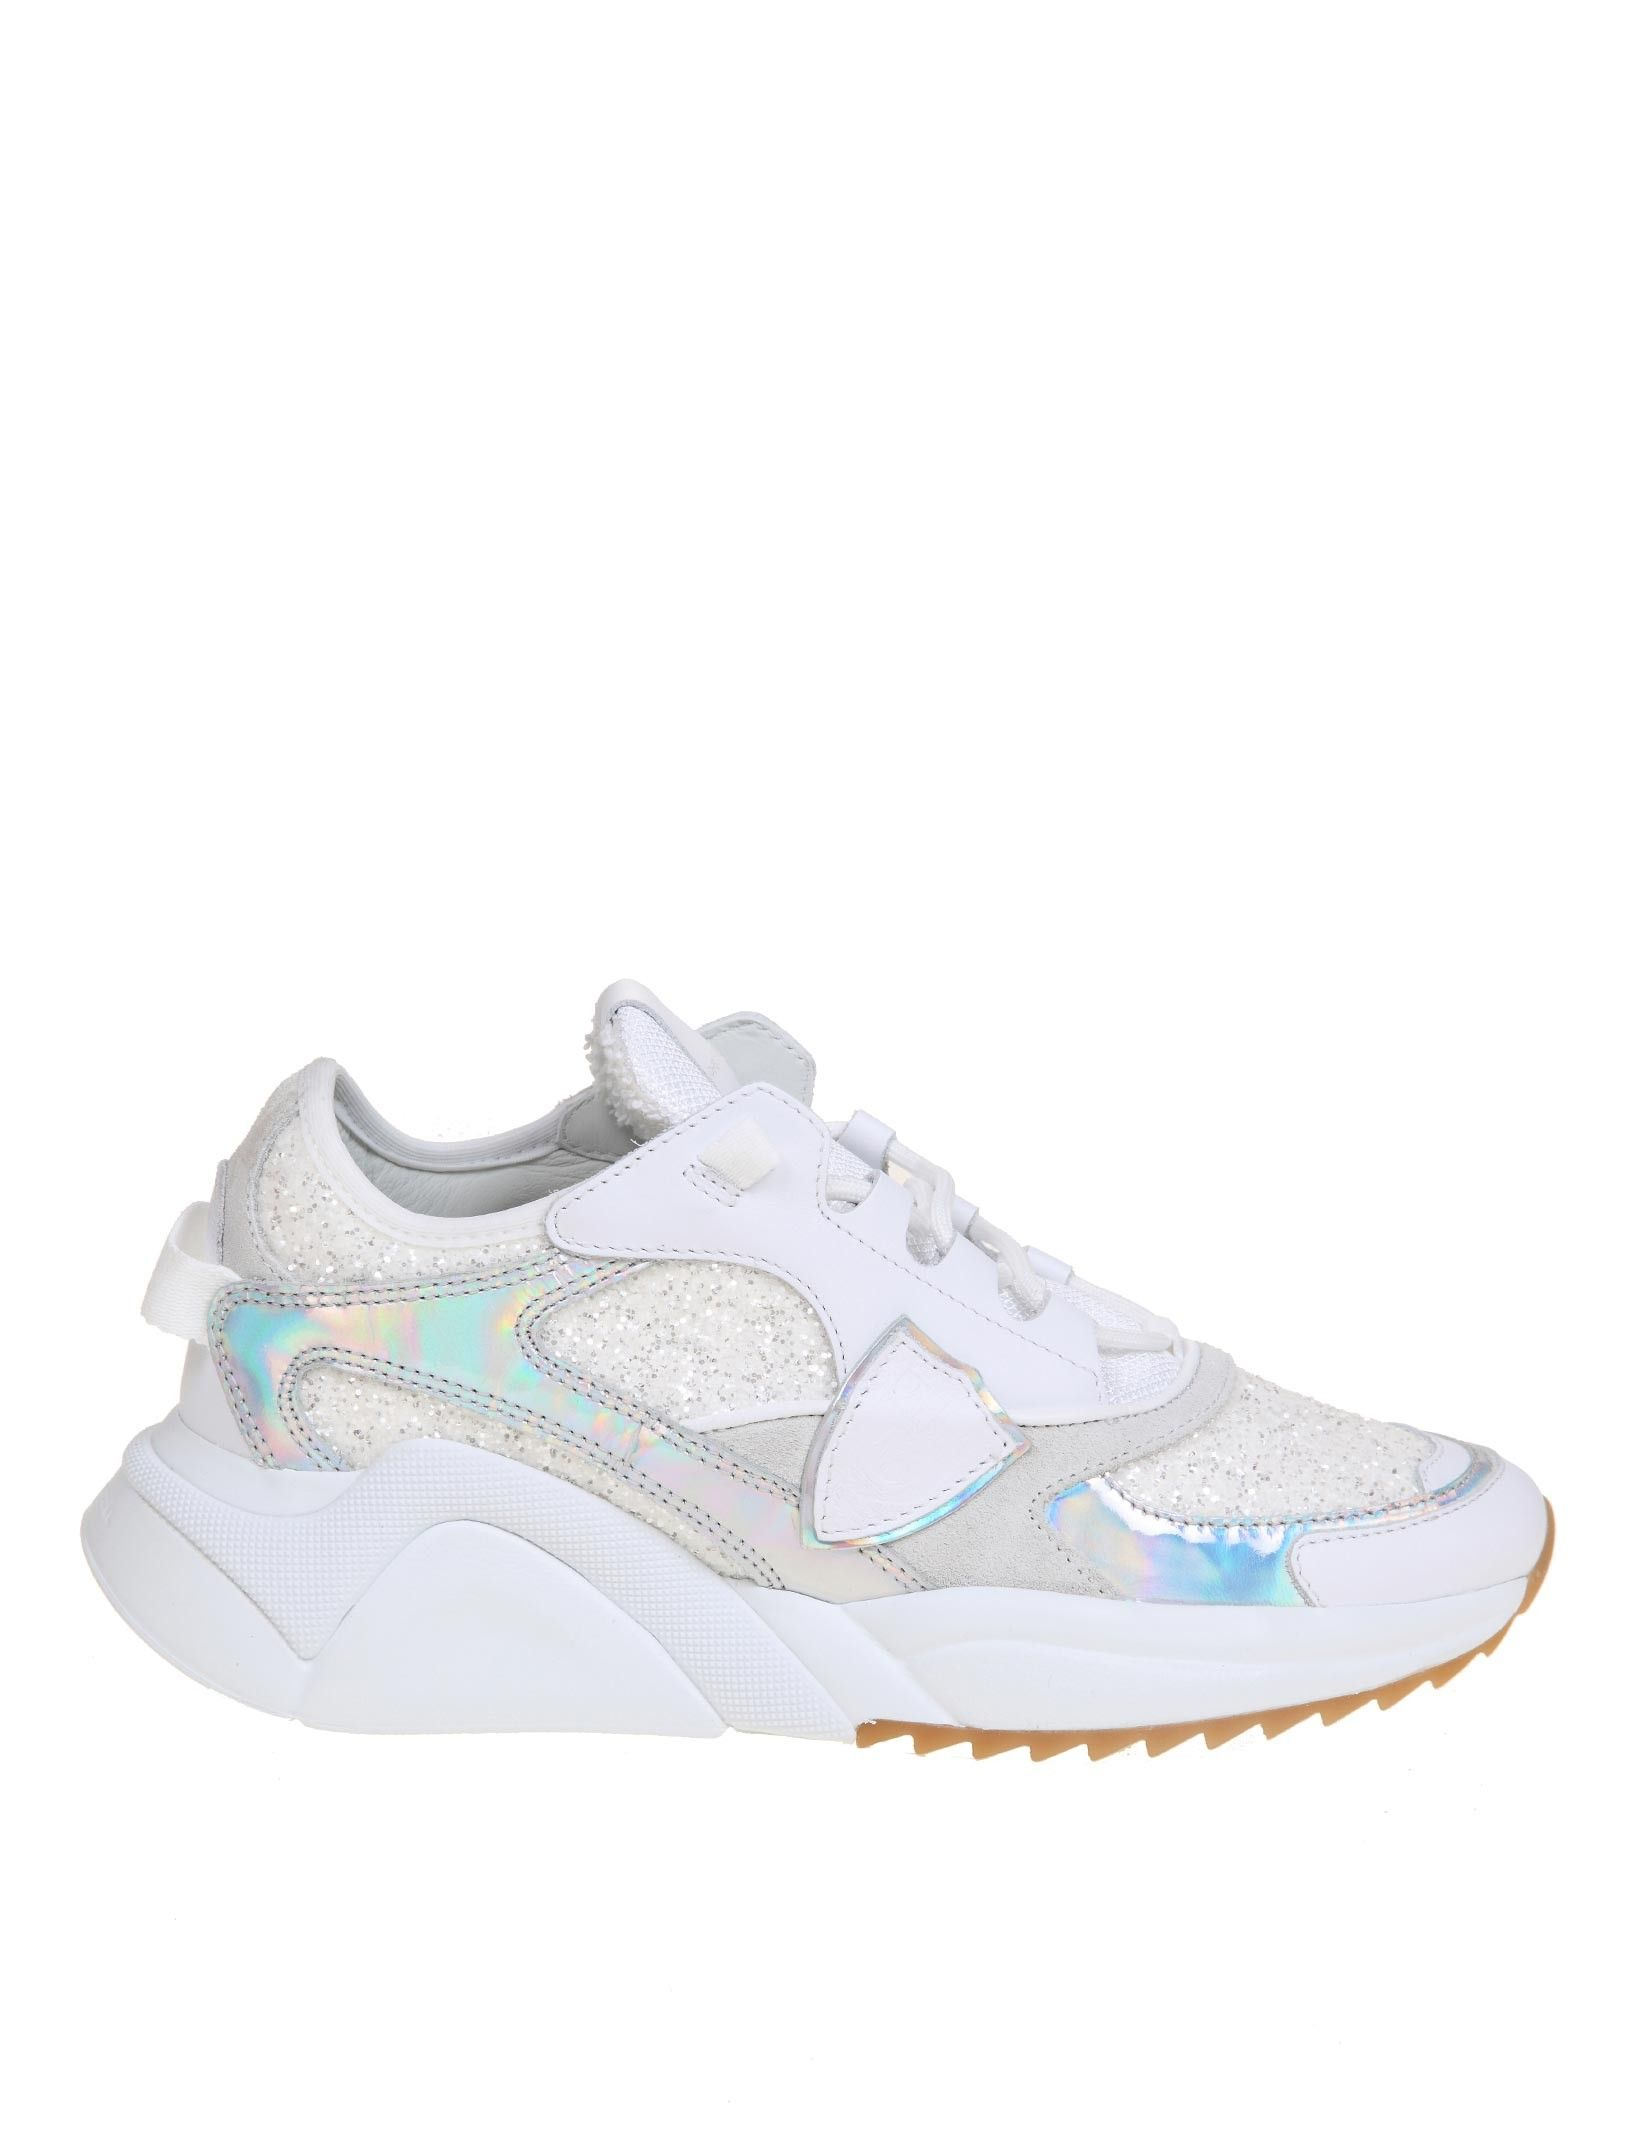 Philippe Model PHILIPPE MODEL WOMEN'S WHITE LEATHER SNEAKERS